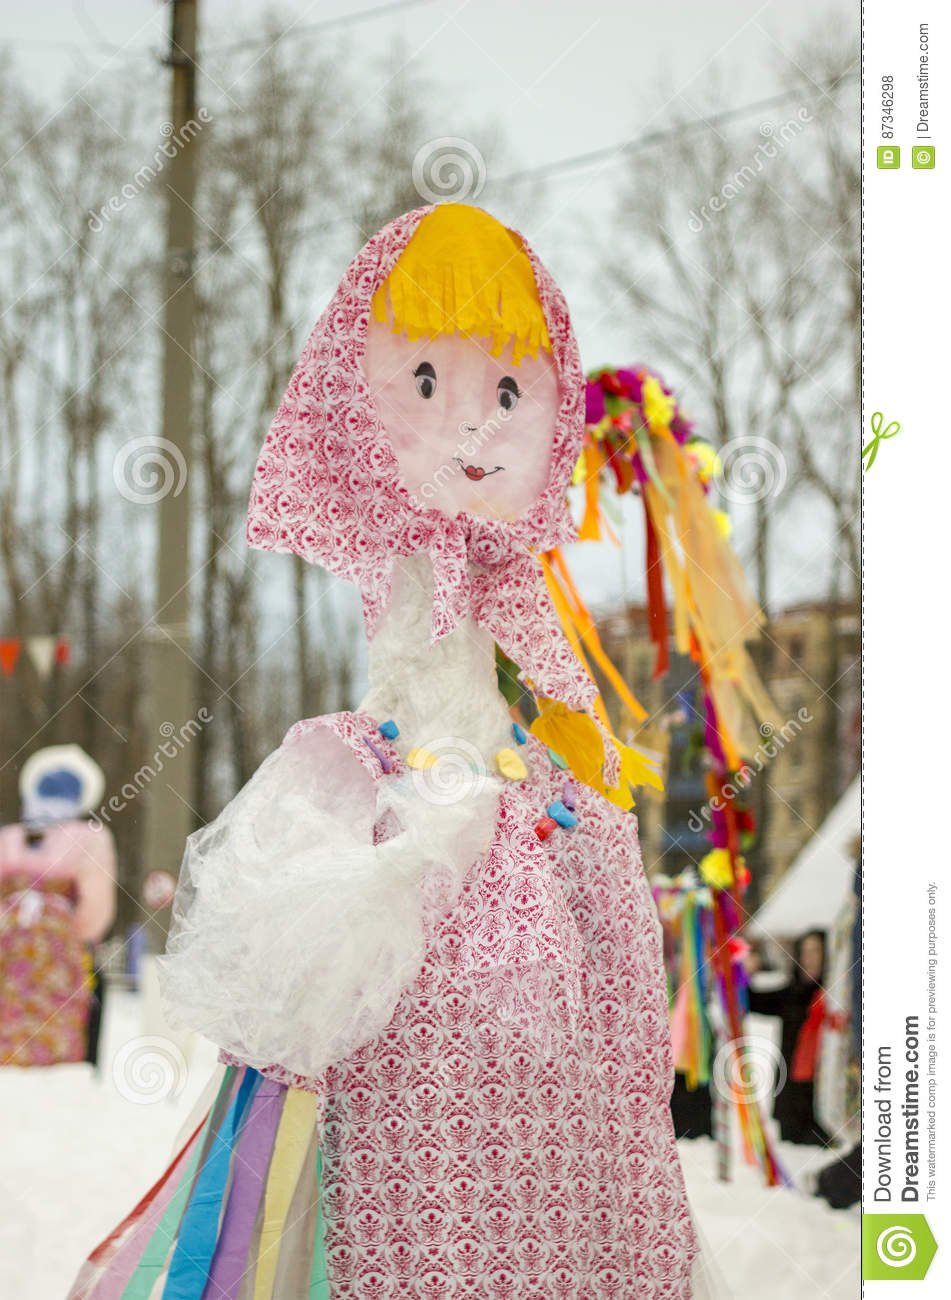 The Effigy Of Maslenitsa. Bright doll in Russian national clothes